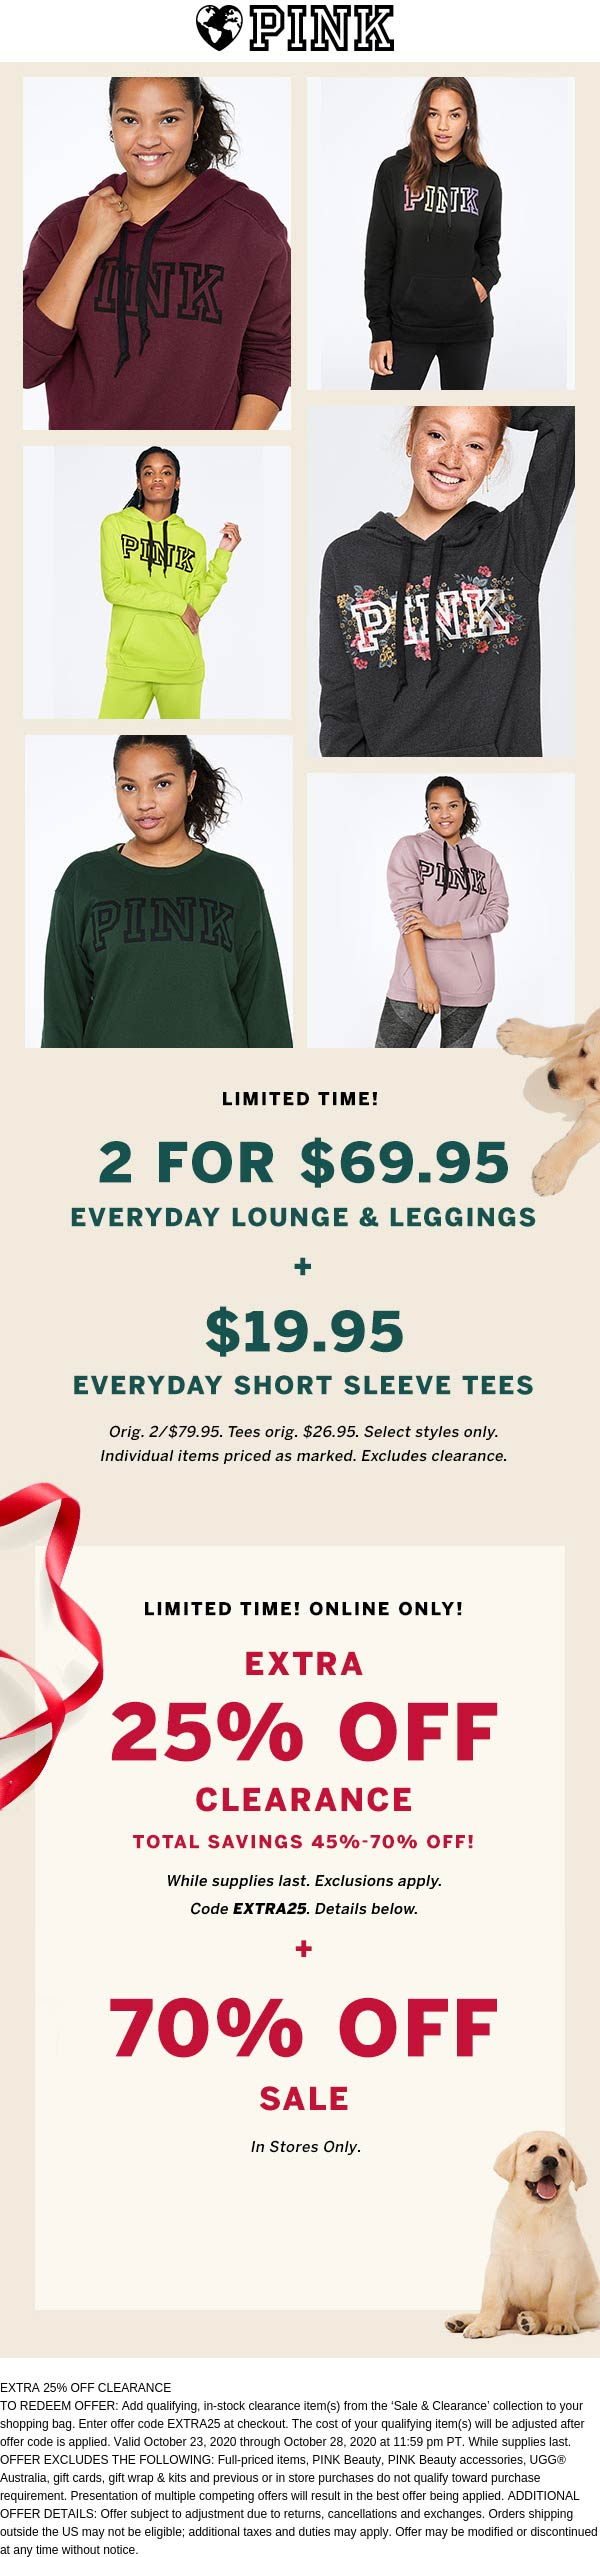 PINK stores Coupon  $20 short sleeve logo shirts + extra 25% off clearance at Victorias Secret PINK via promo code EXTRA25 #pink